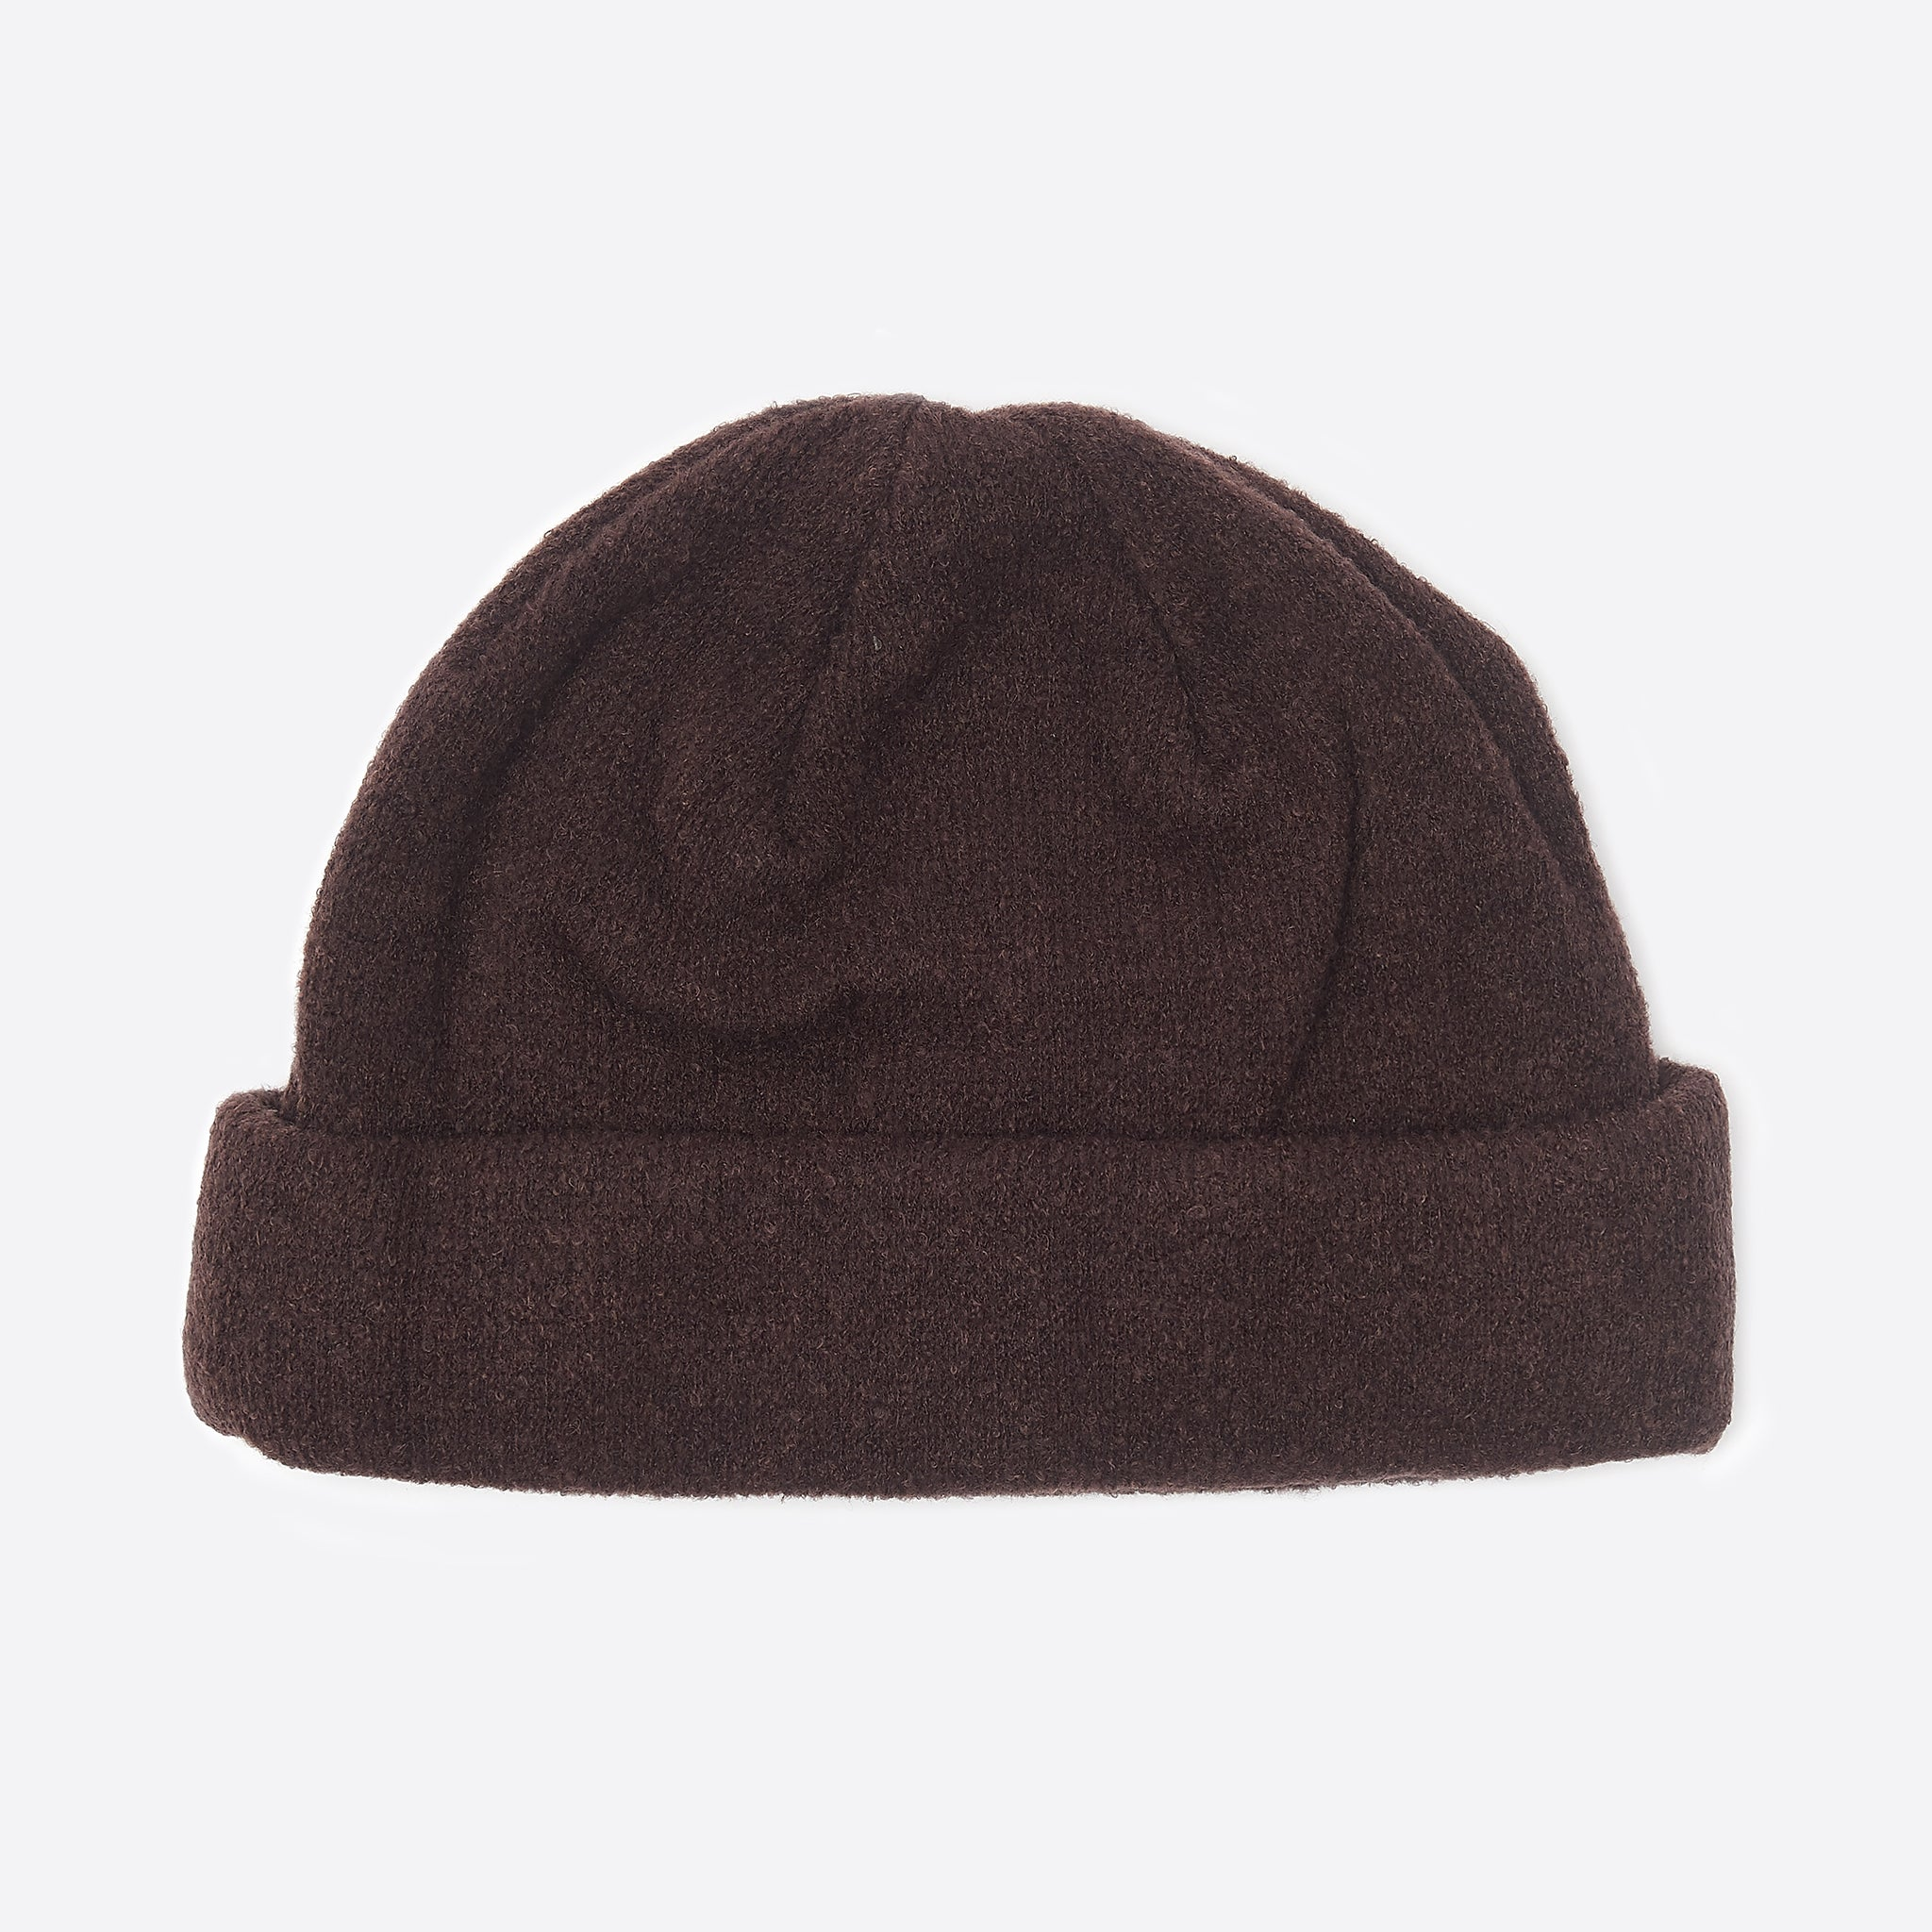 RoToTo MOF Watch Cap in Brown